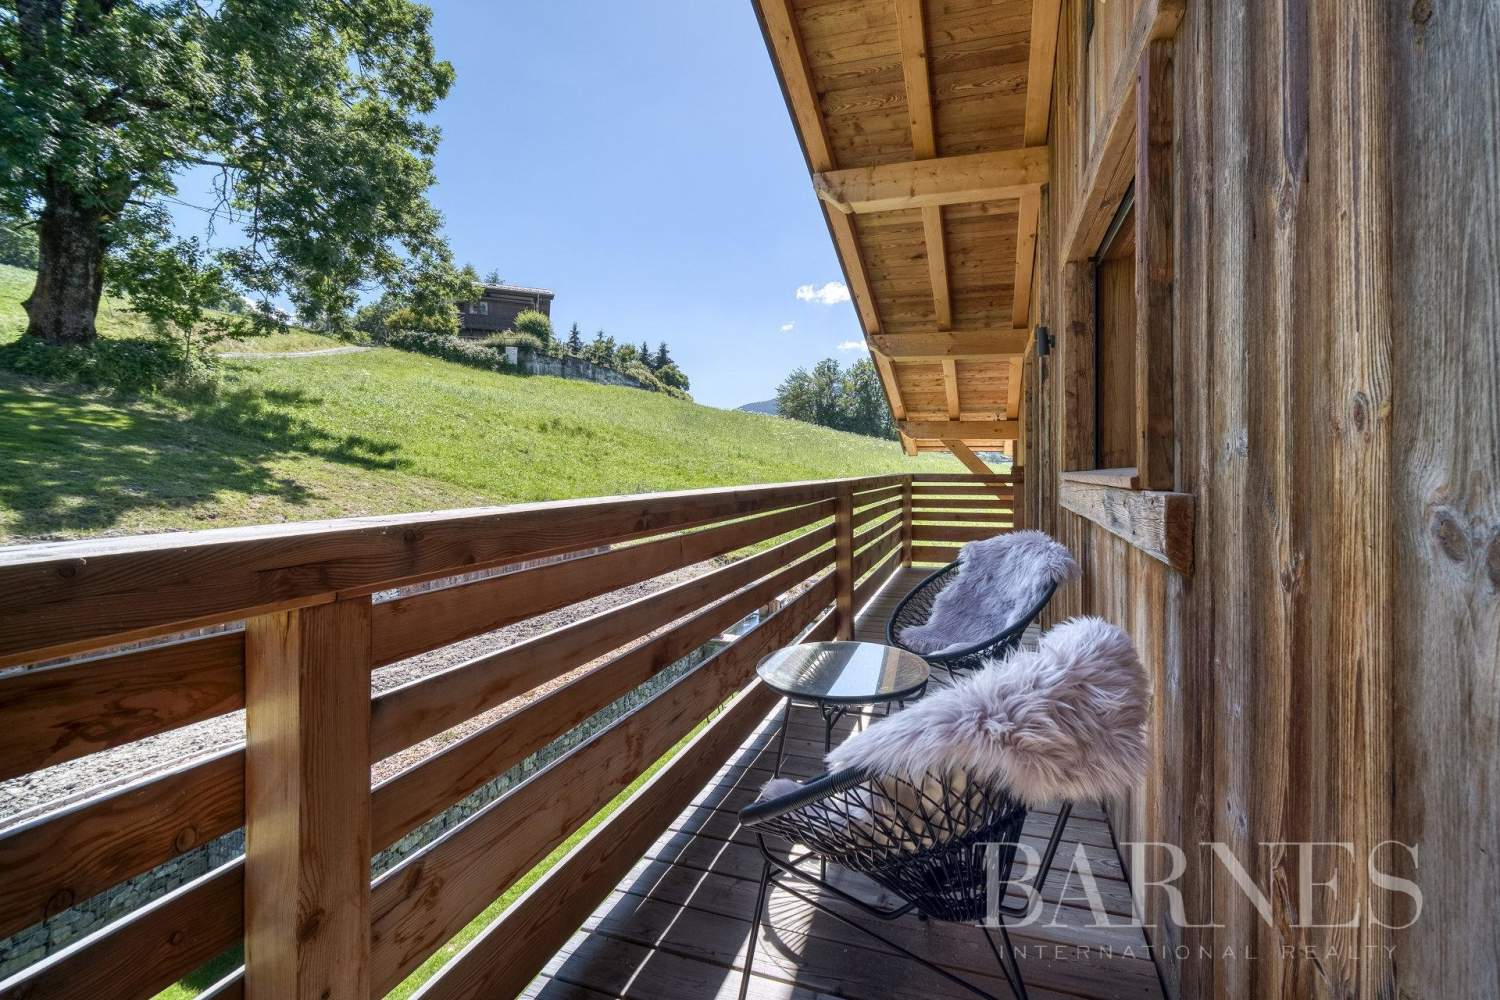 Exclusive to Barnes - Stunning ski-in chalet situated on La Princesse ski slopes picture 10